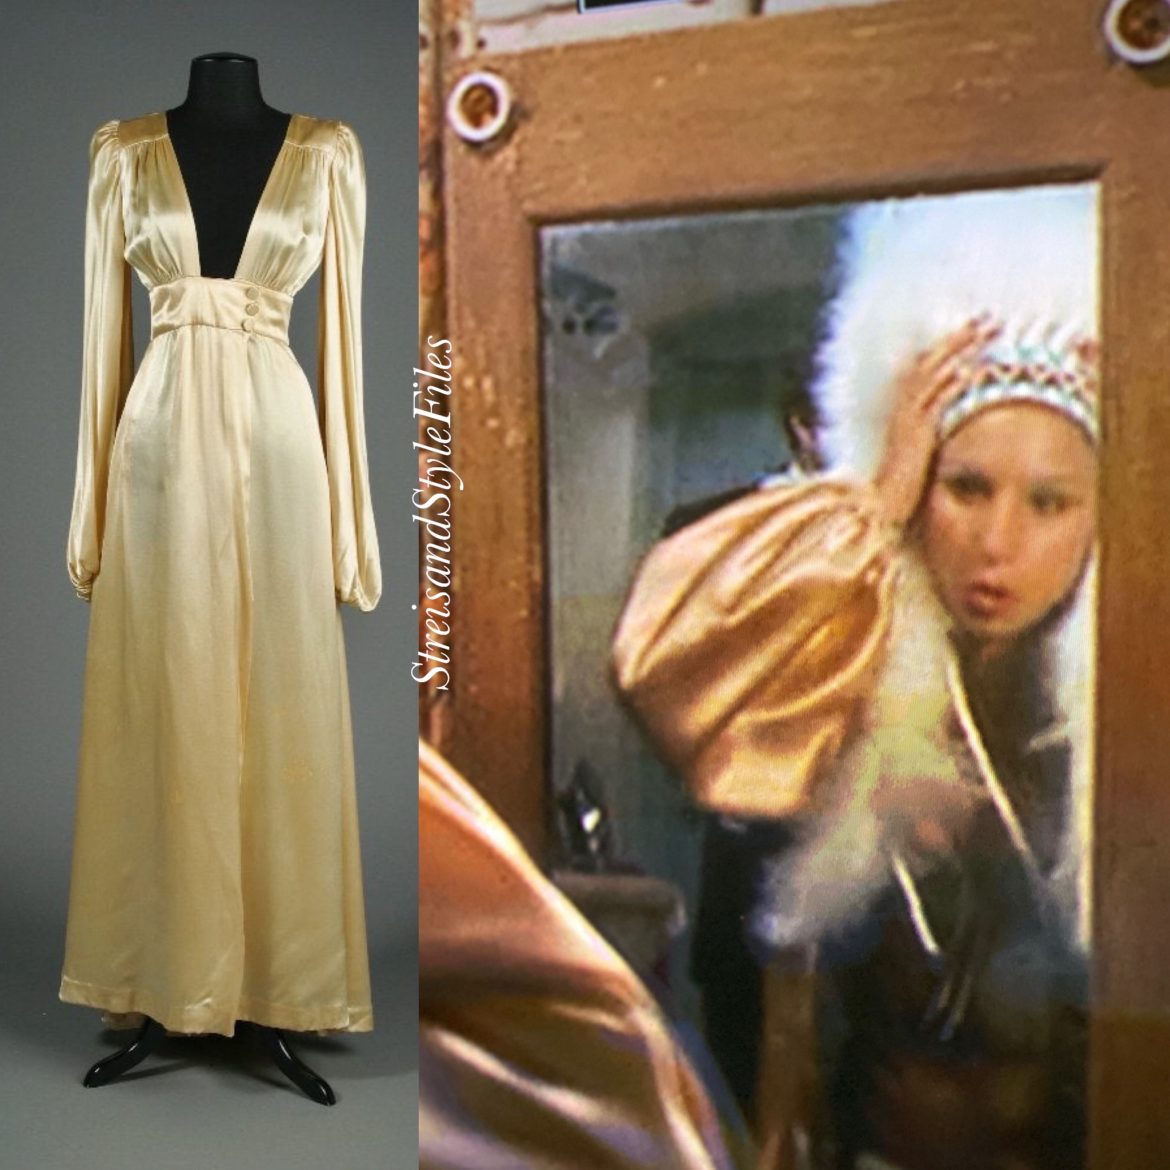 Funny Lady 1940's style gold negligee by Bob Mackie and Ray Aghayan